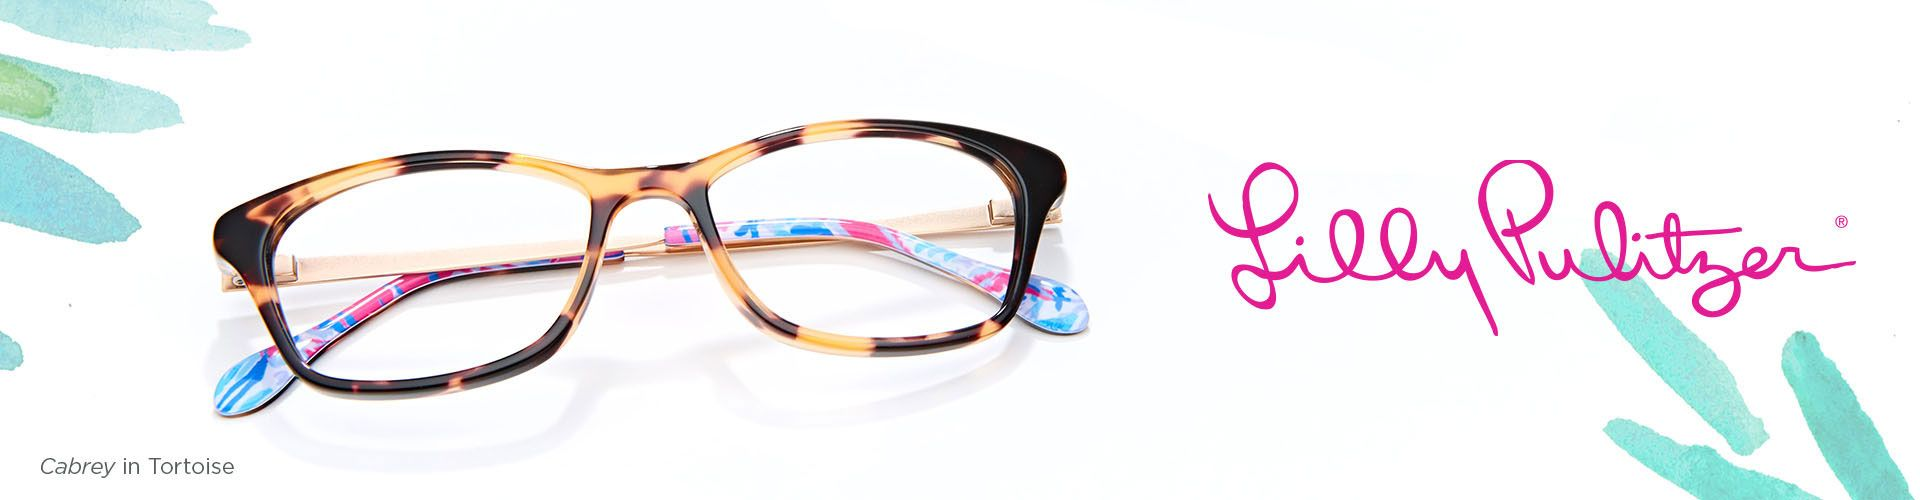 Shop Lilly Pulitzer Eyeglasses - model Cabrey featured